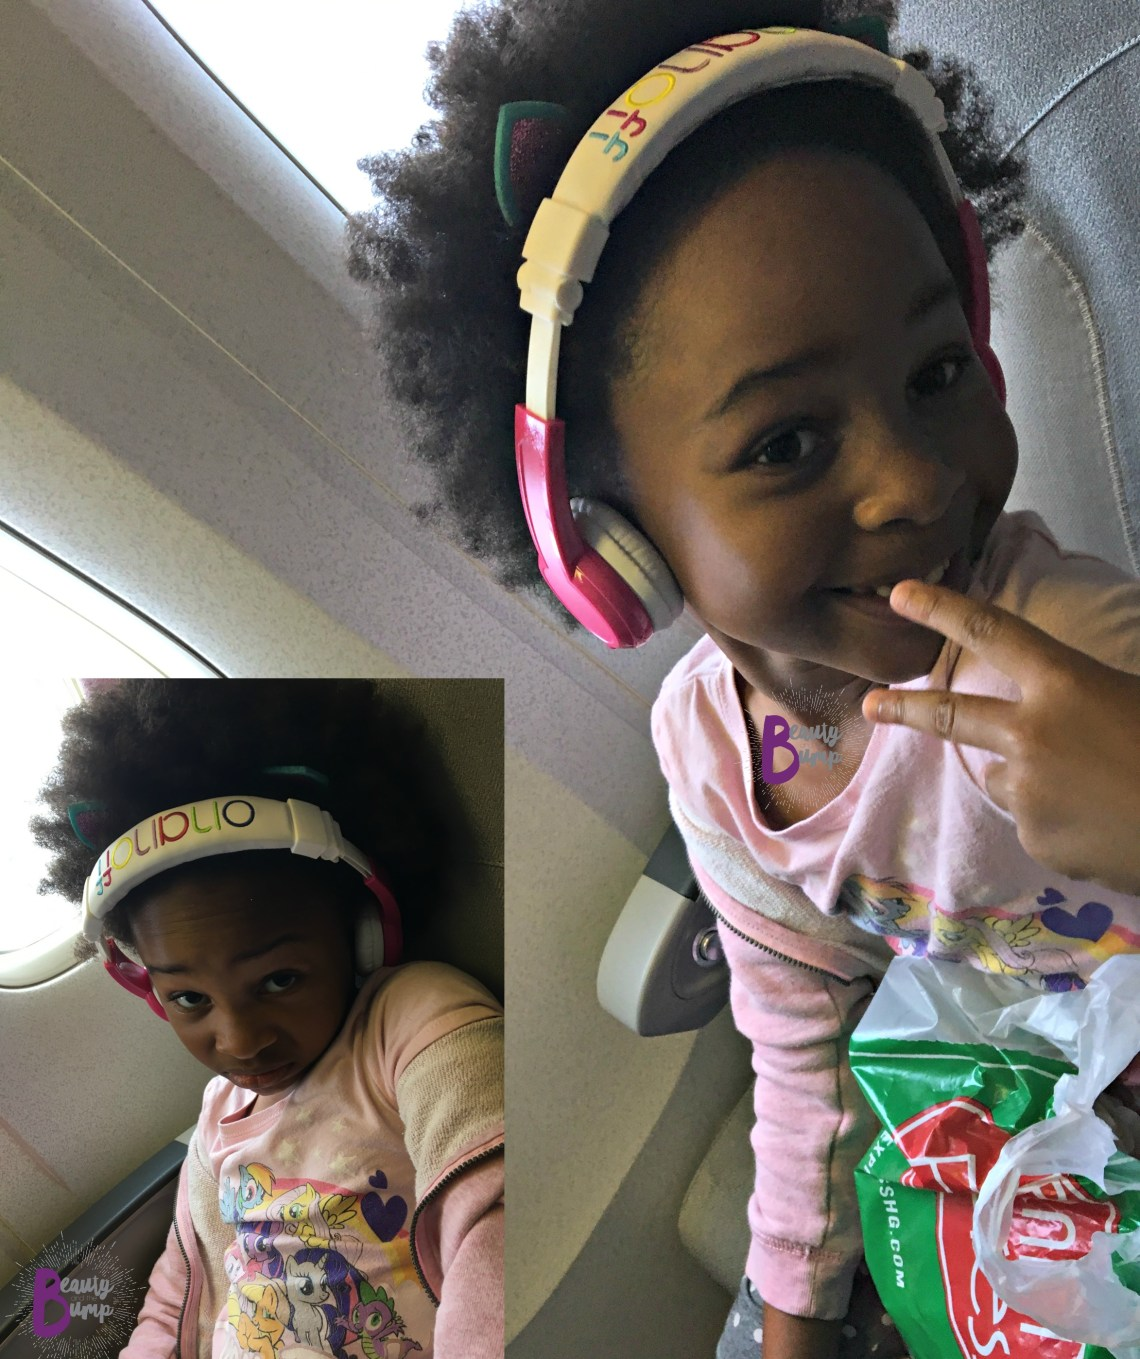 Buddyphones inflight long haul travel kids2